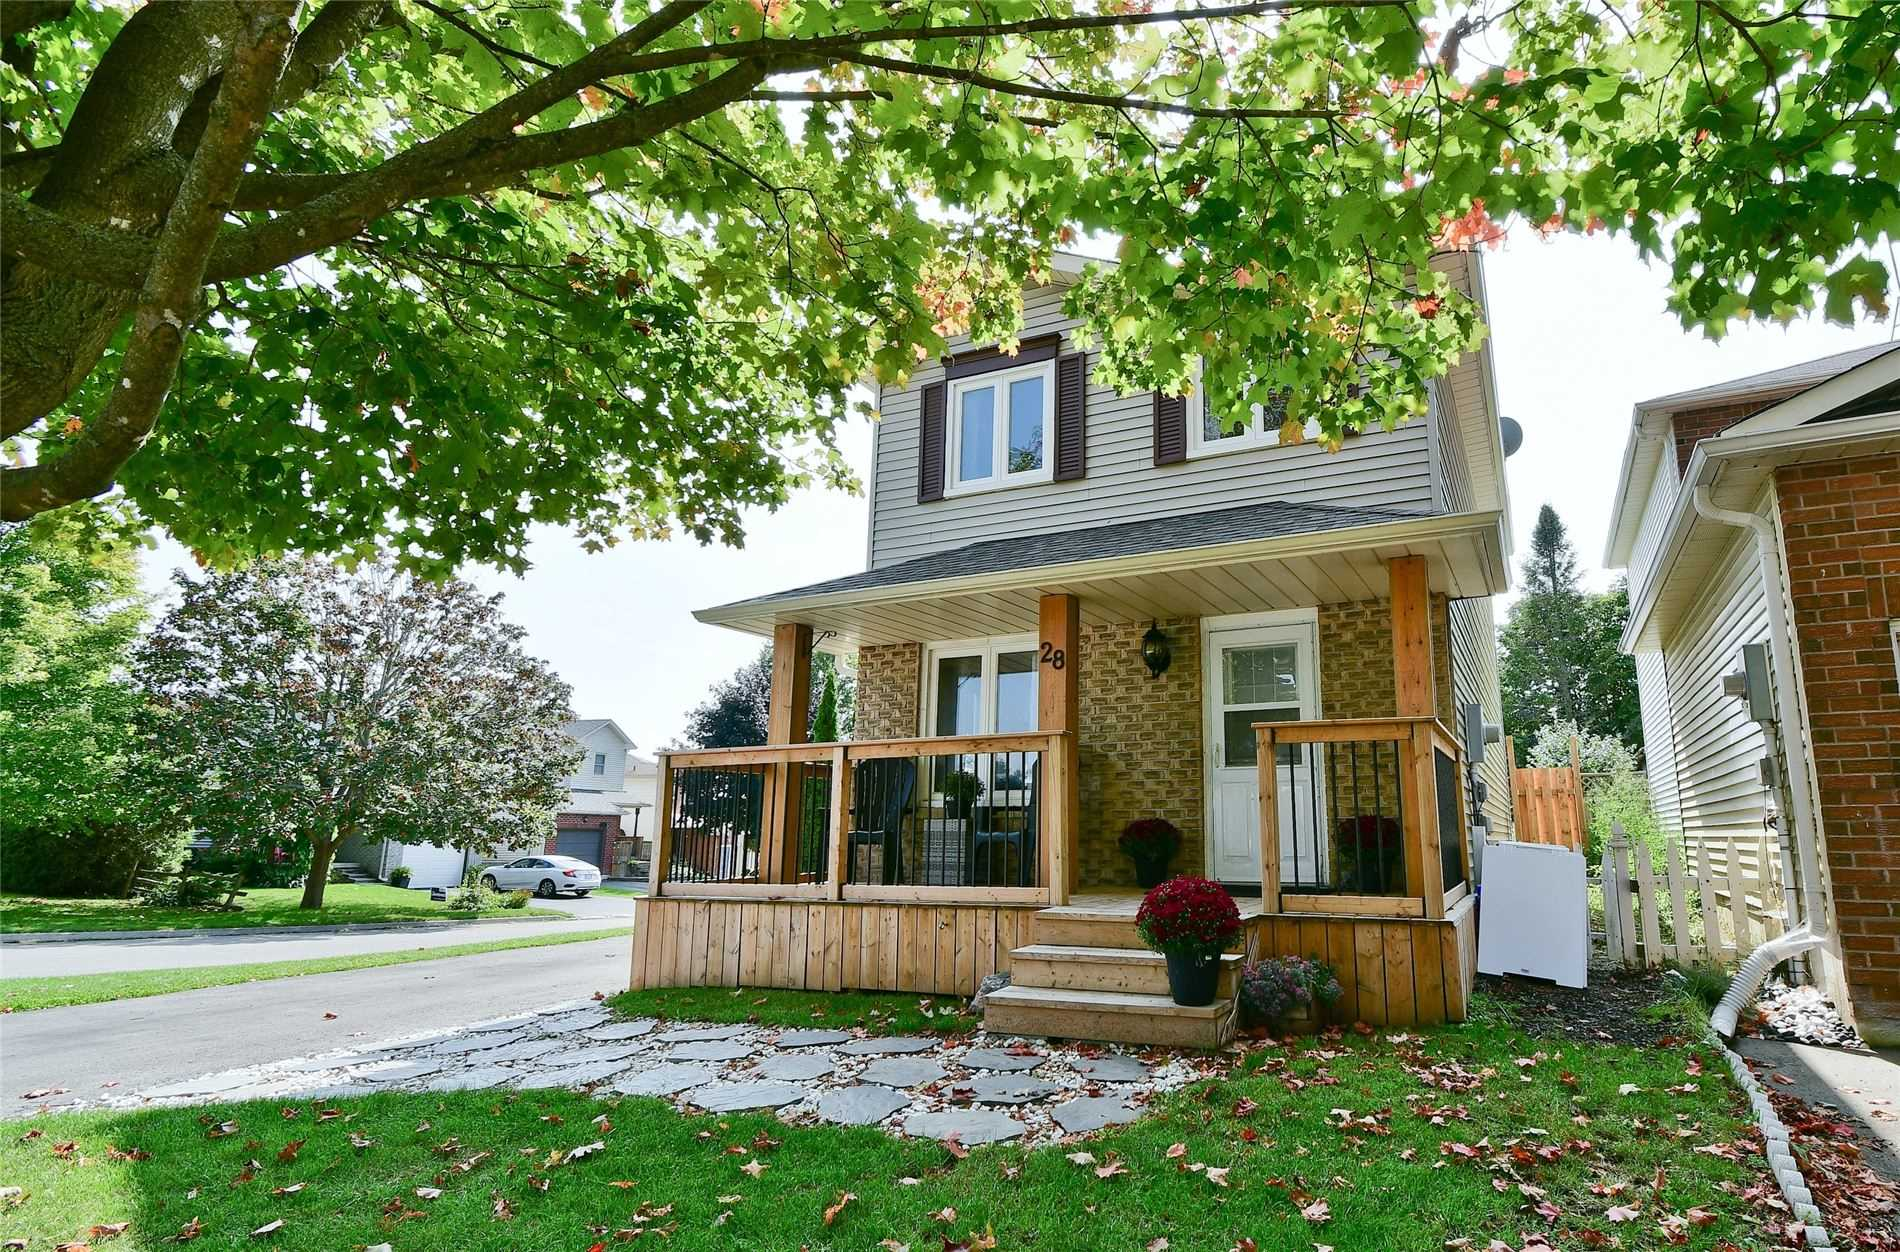 Detached house For Sale In Port Hope - 28 Curtis Crt, Port Hope, Ontario, Canada L1A 4H5 , 3 Bedrooms Bedrooms, ,2 BathroomsBathrooms,Detached,For Sale,Curtis